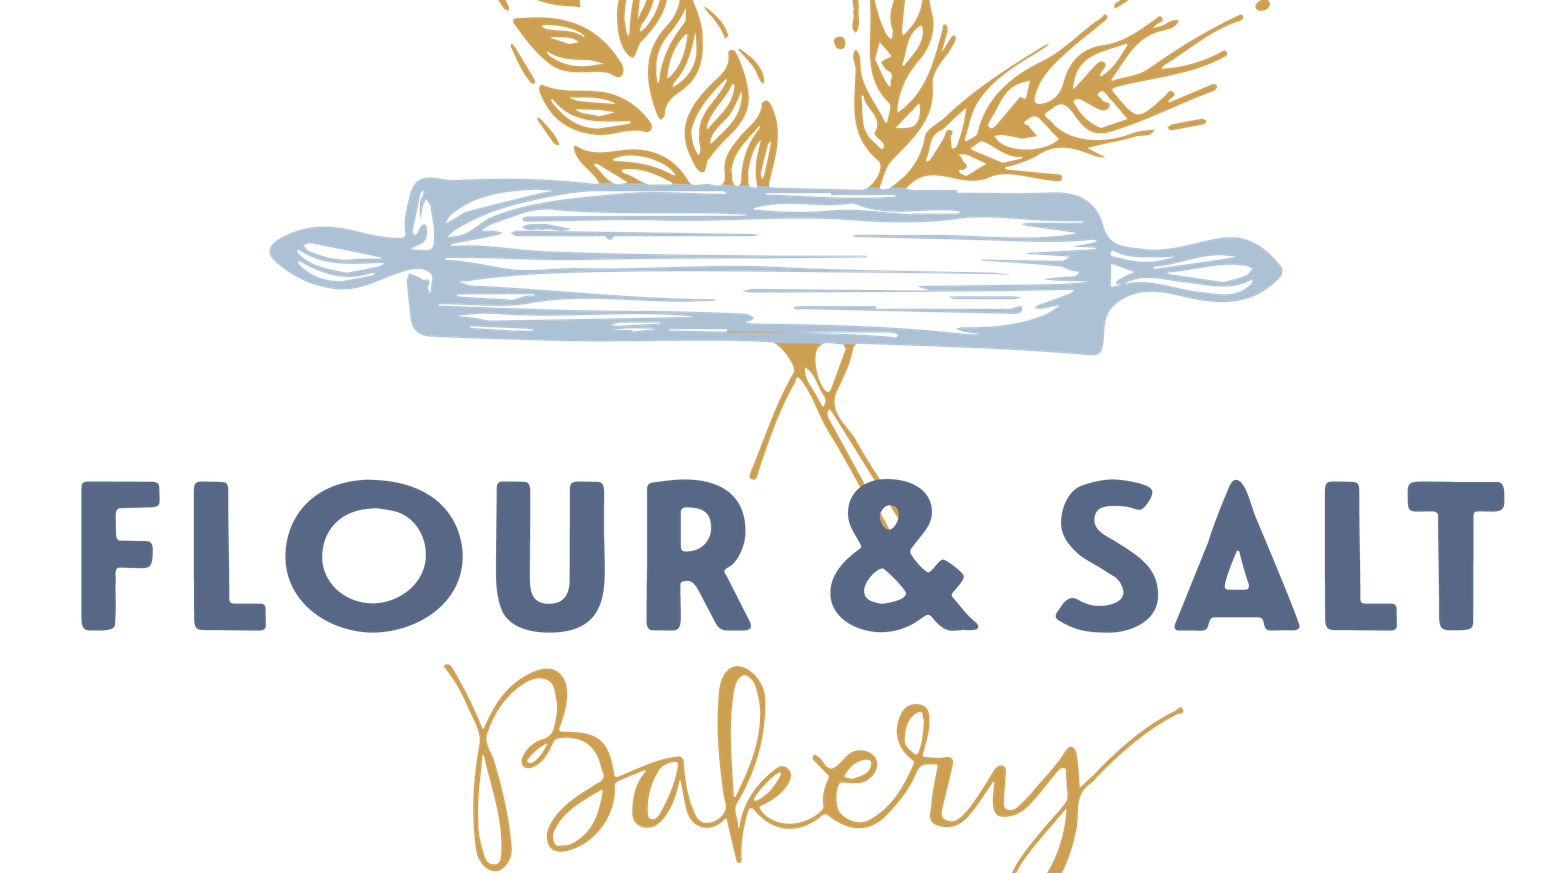 France clipart bakery french. Flour and salt by